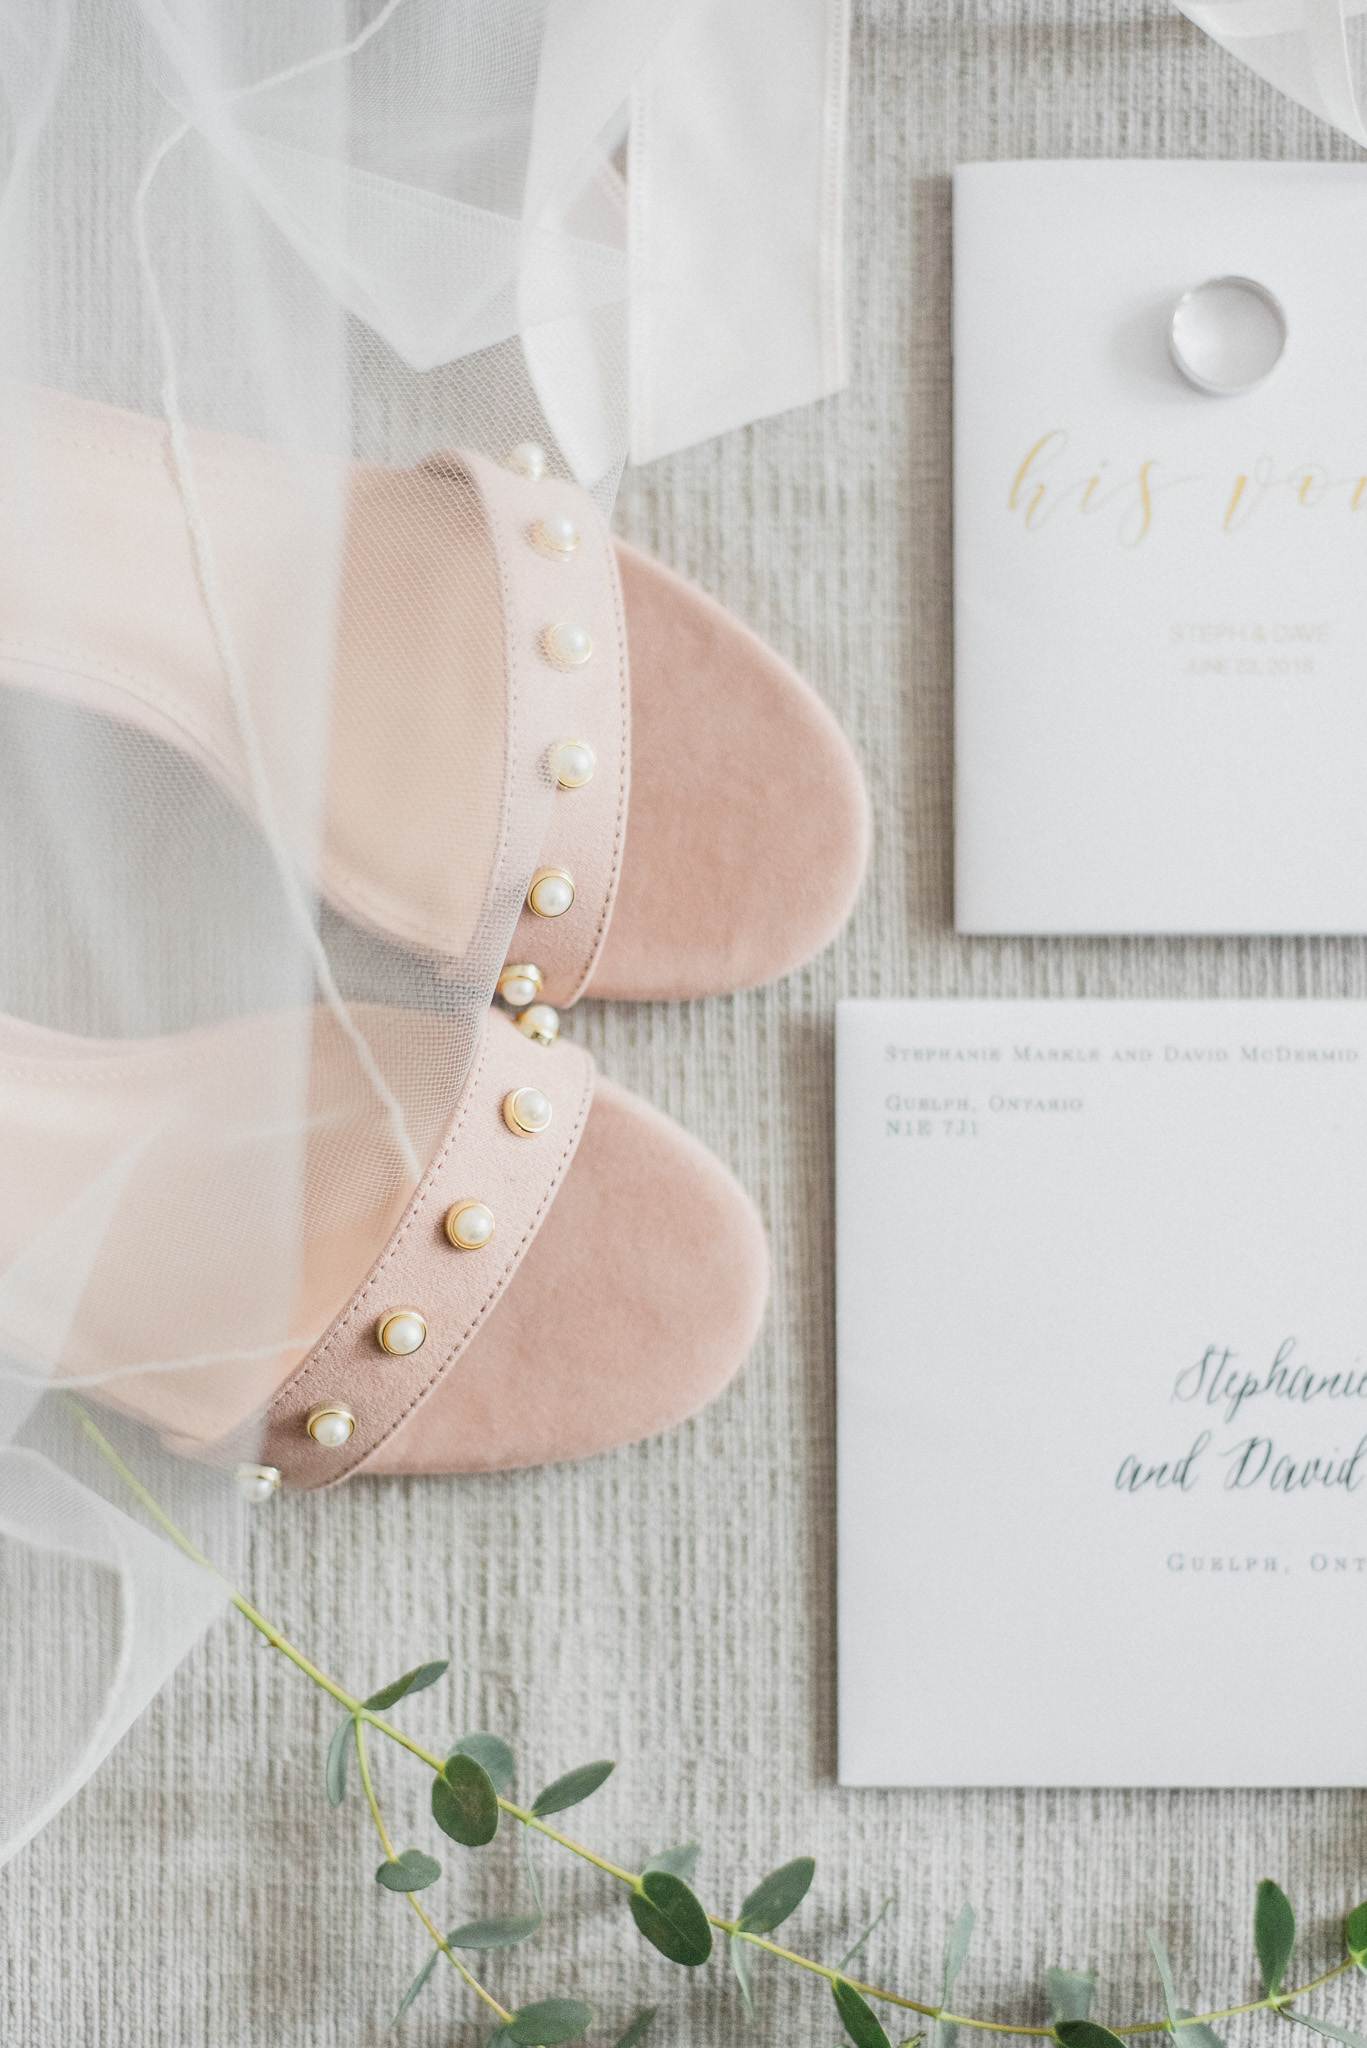 Light and romantic bridal details, photographed by Jenn Kavanagh Photography.